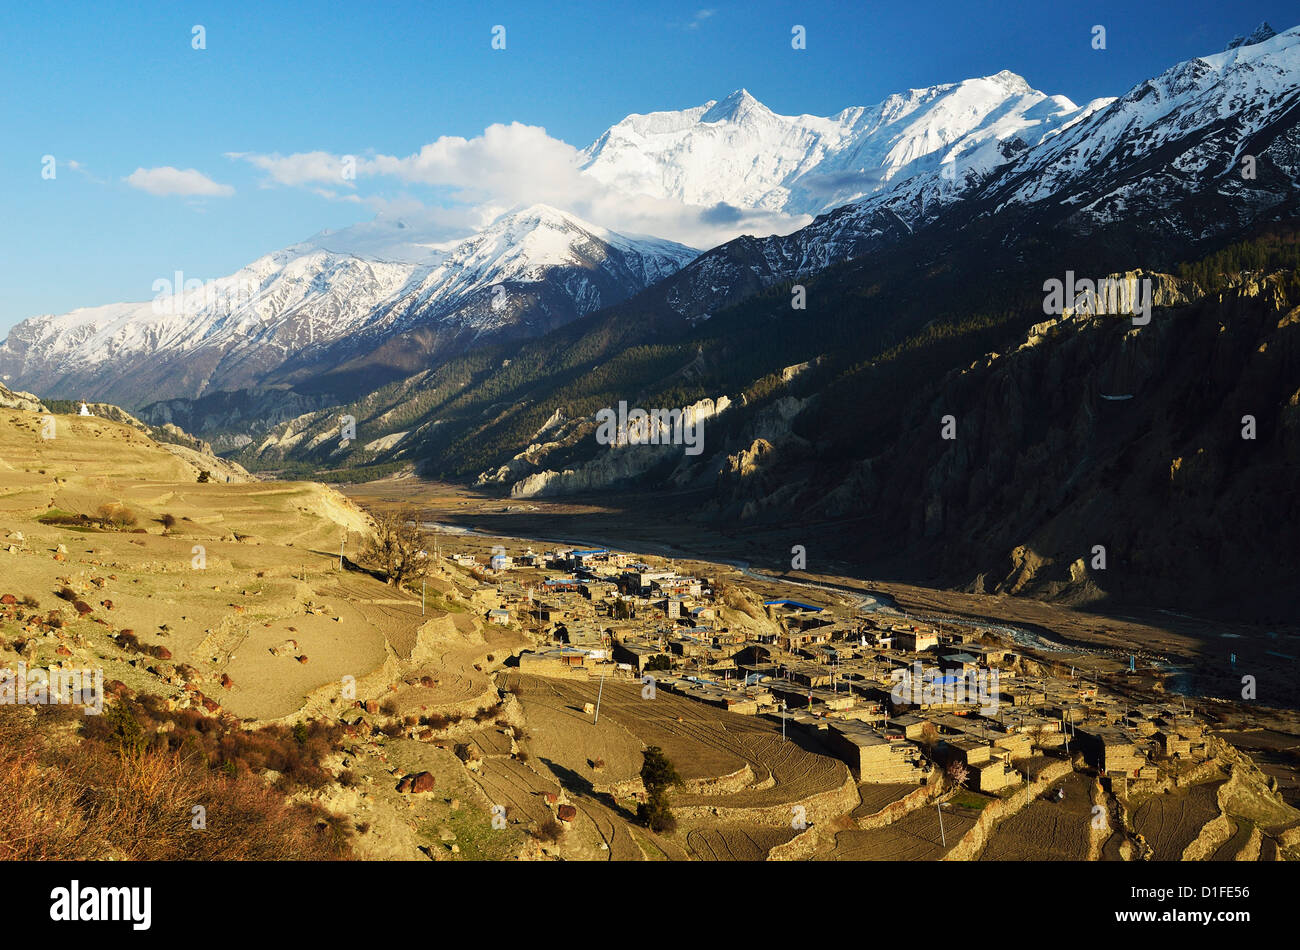 Manang village and Annapurna Himalayan Range, Annapurna Conservation Area, Gandaki, Pashchimanchal, Nepal Stock Photo